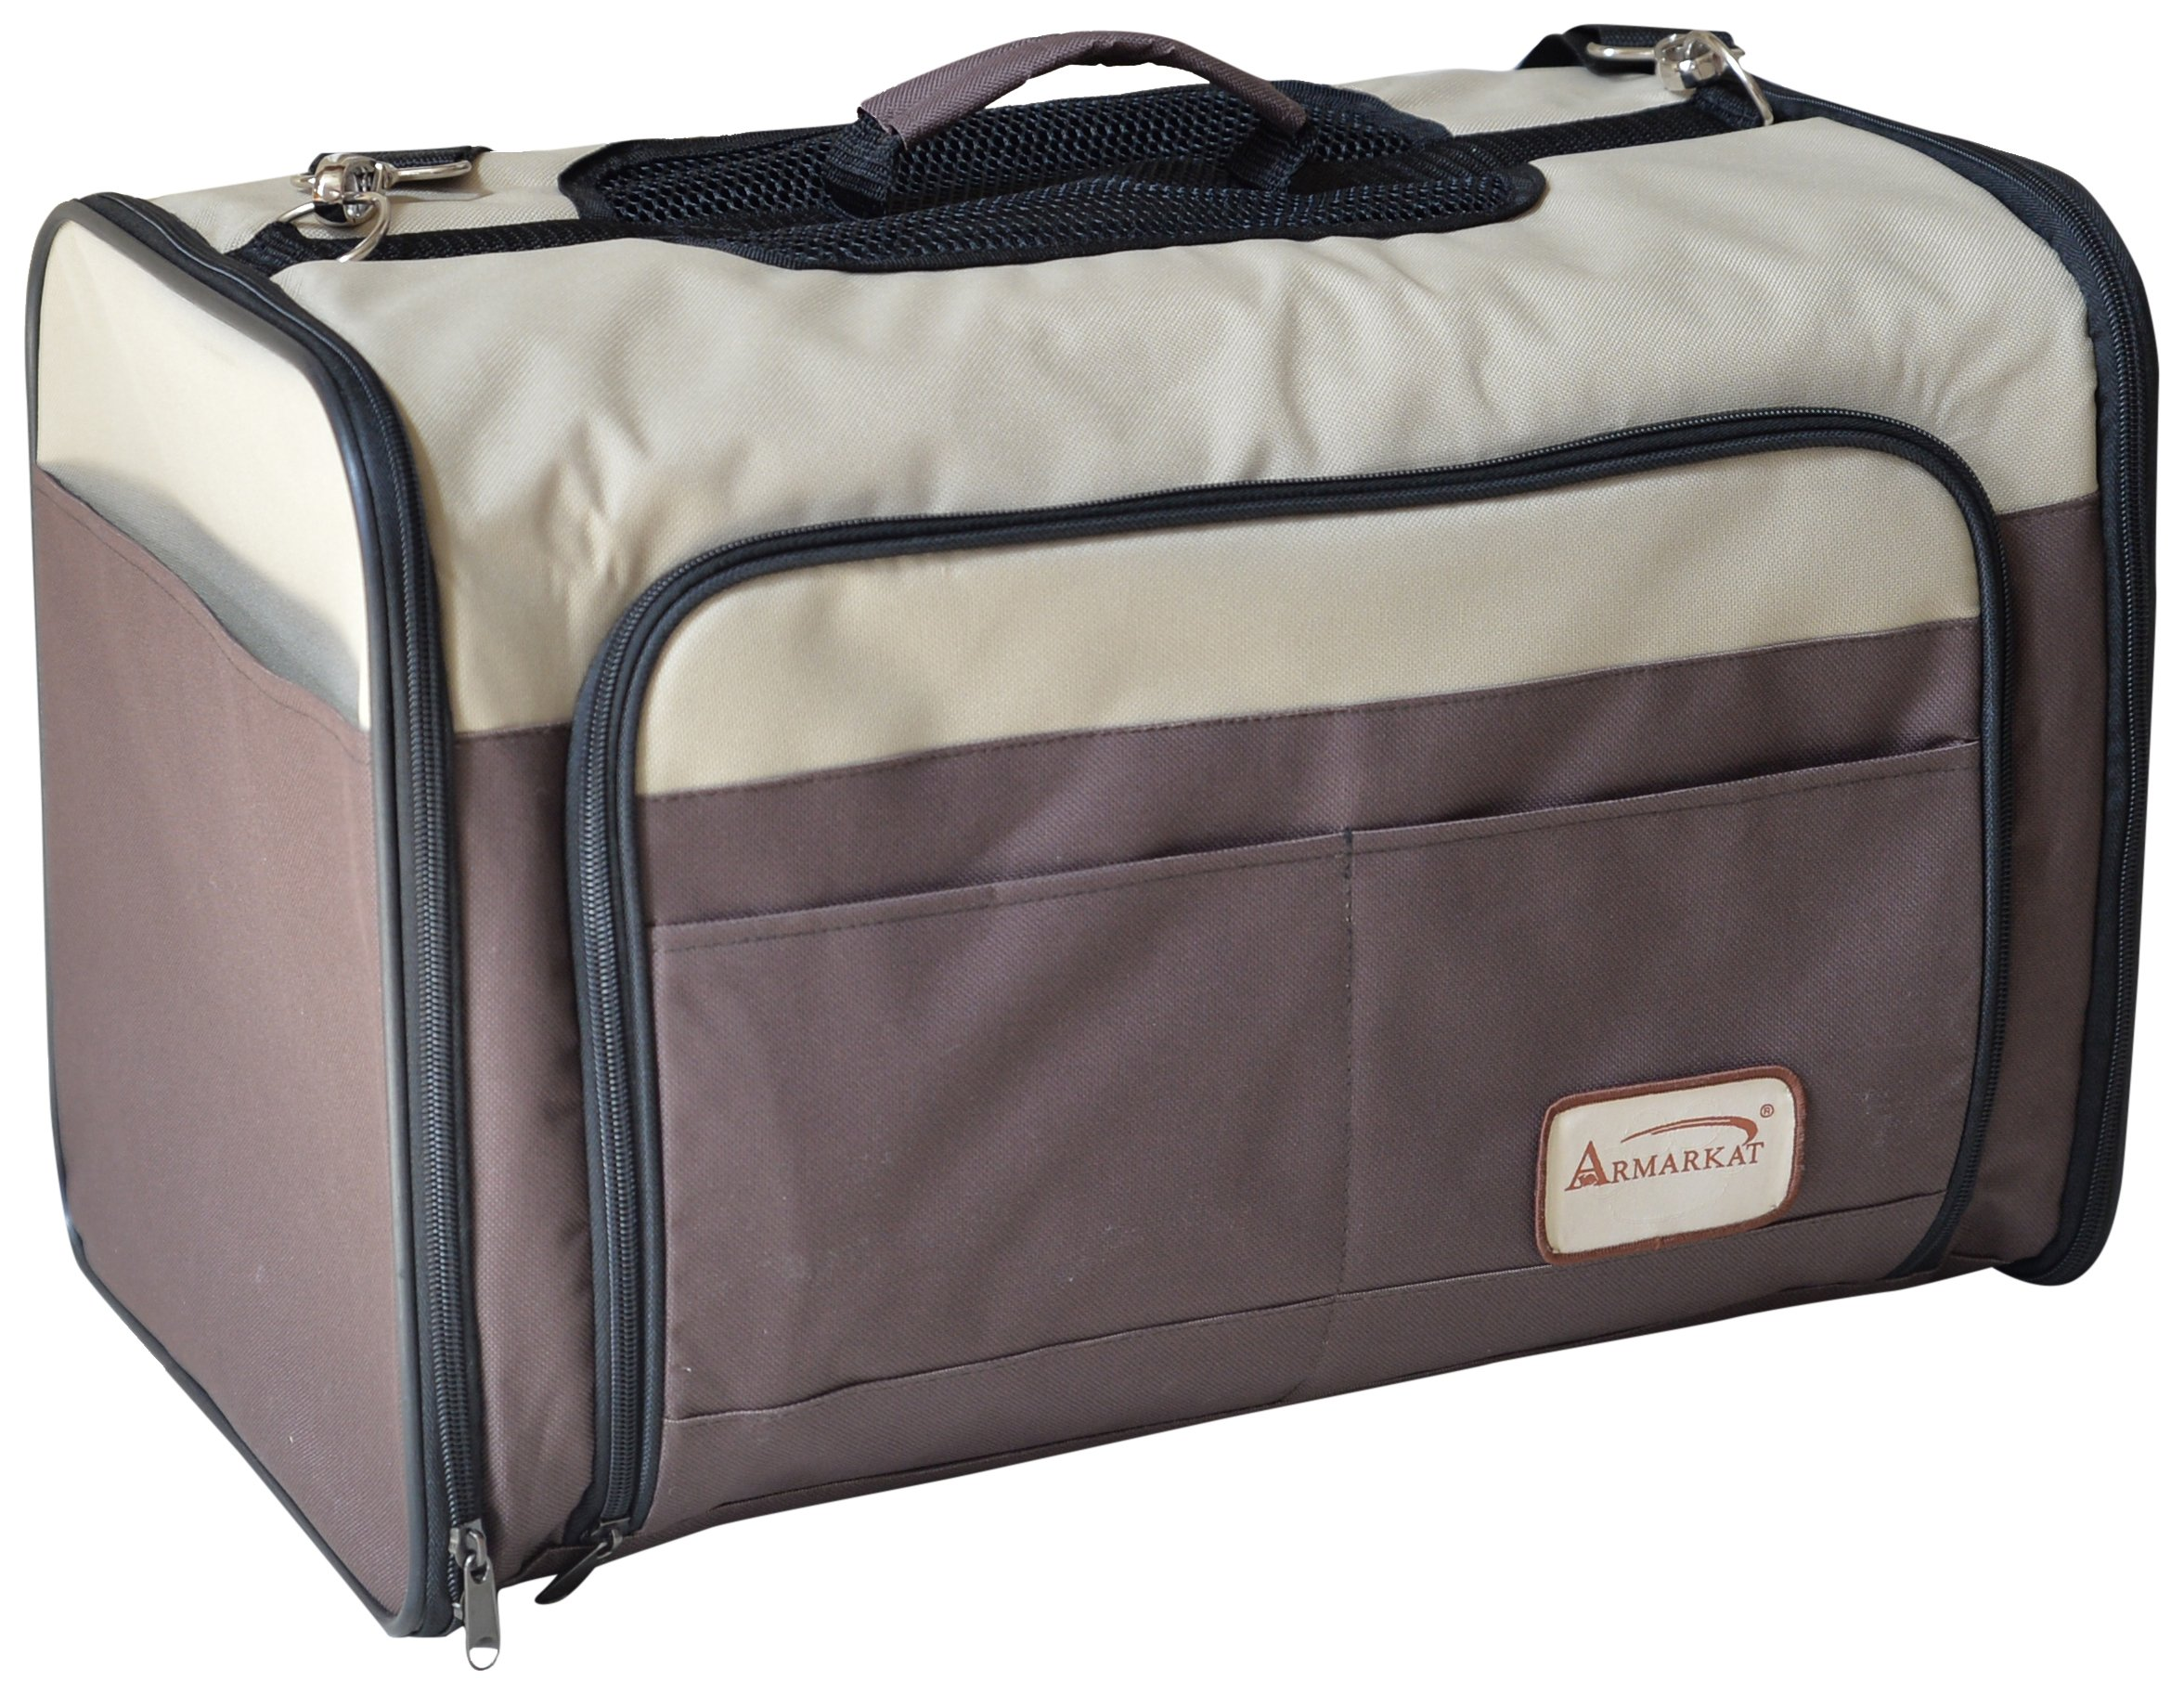 Armarkat PC102R Beige & Chocolate Pet Carrier